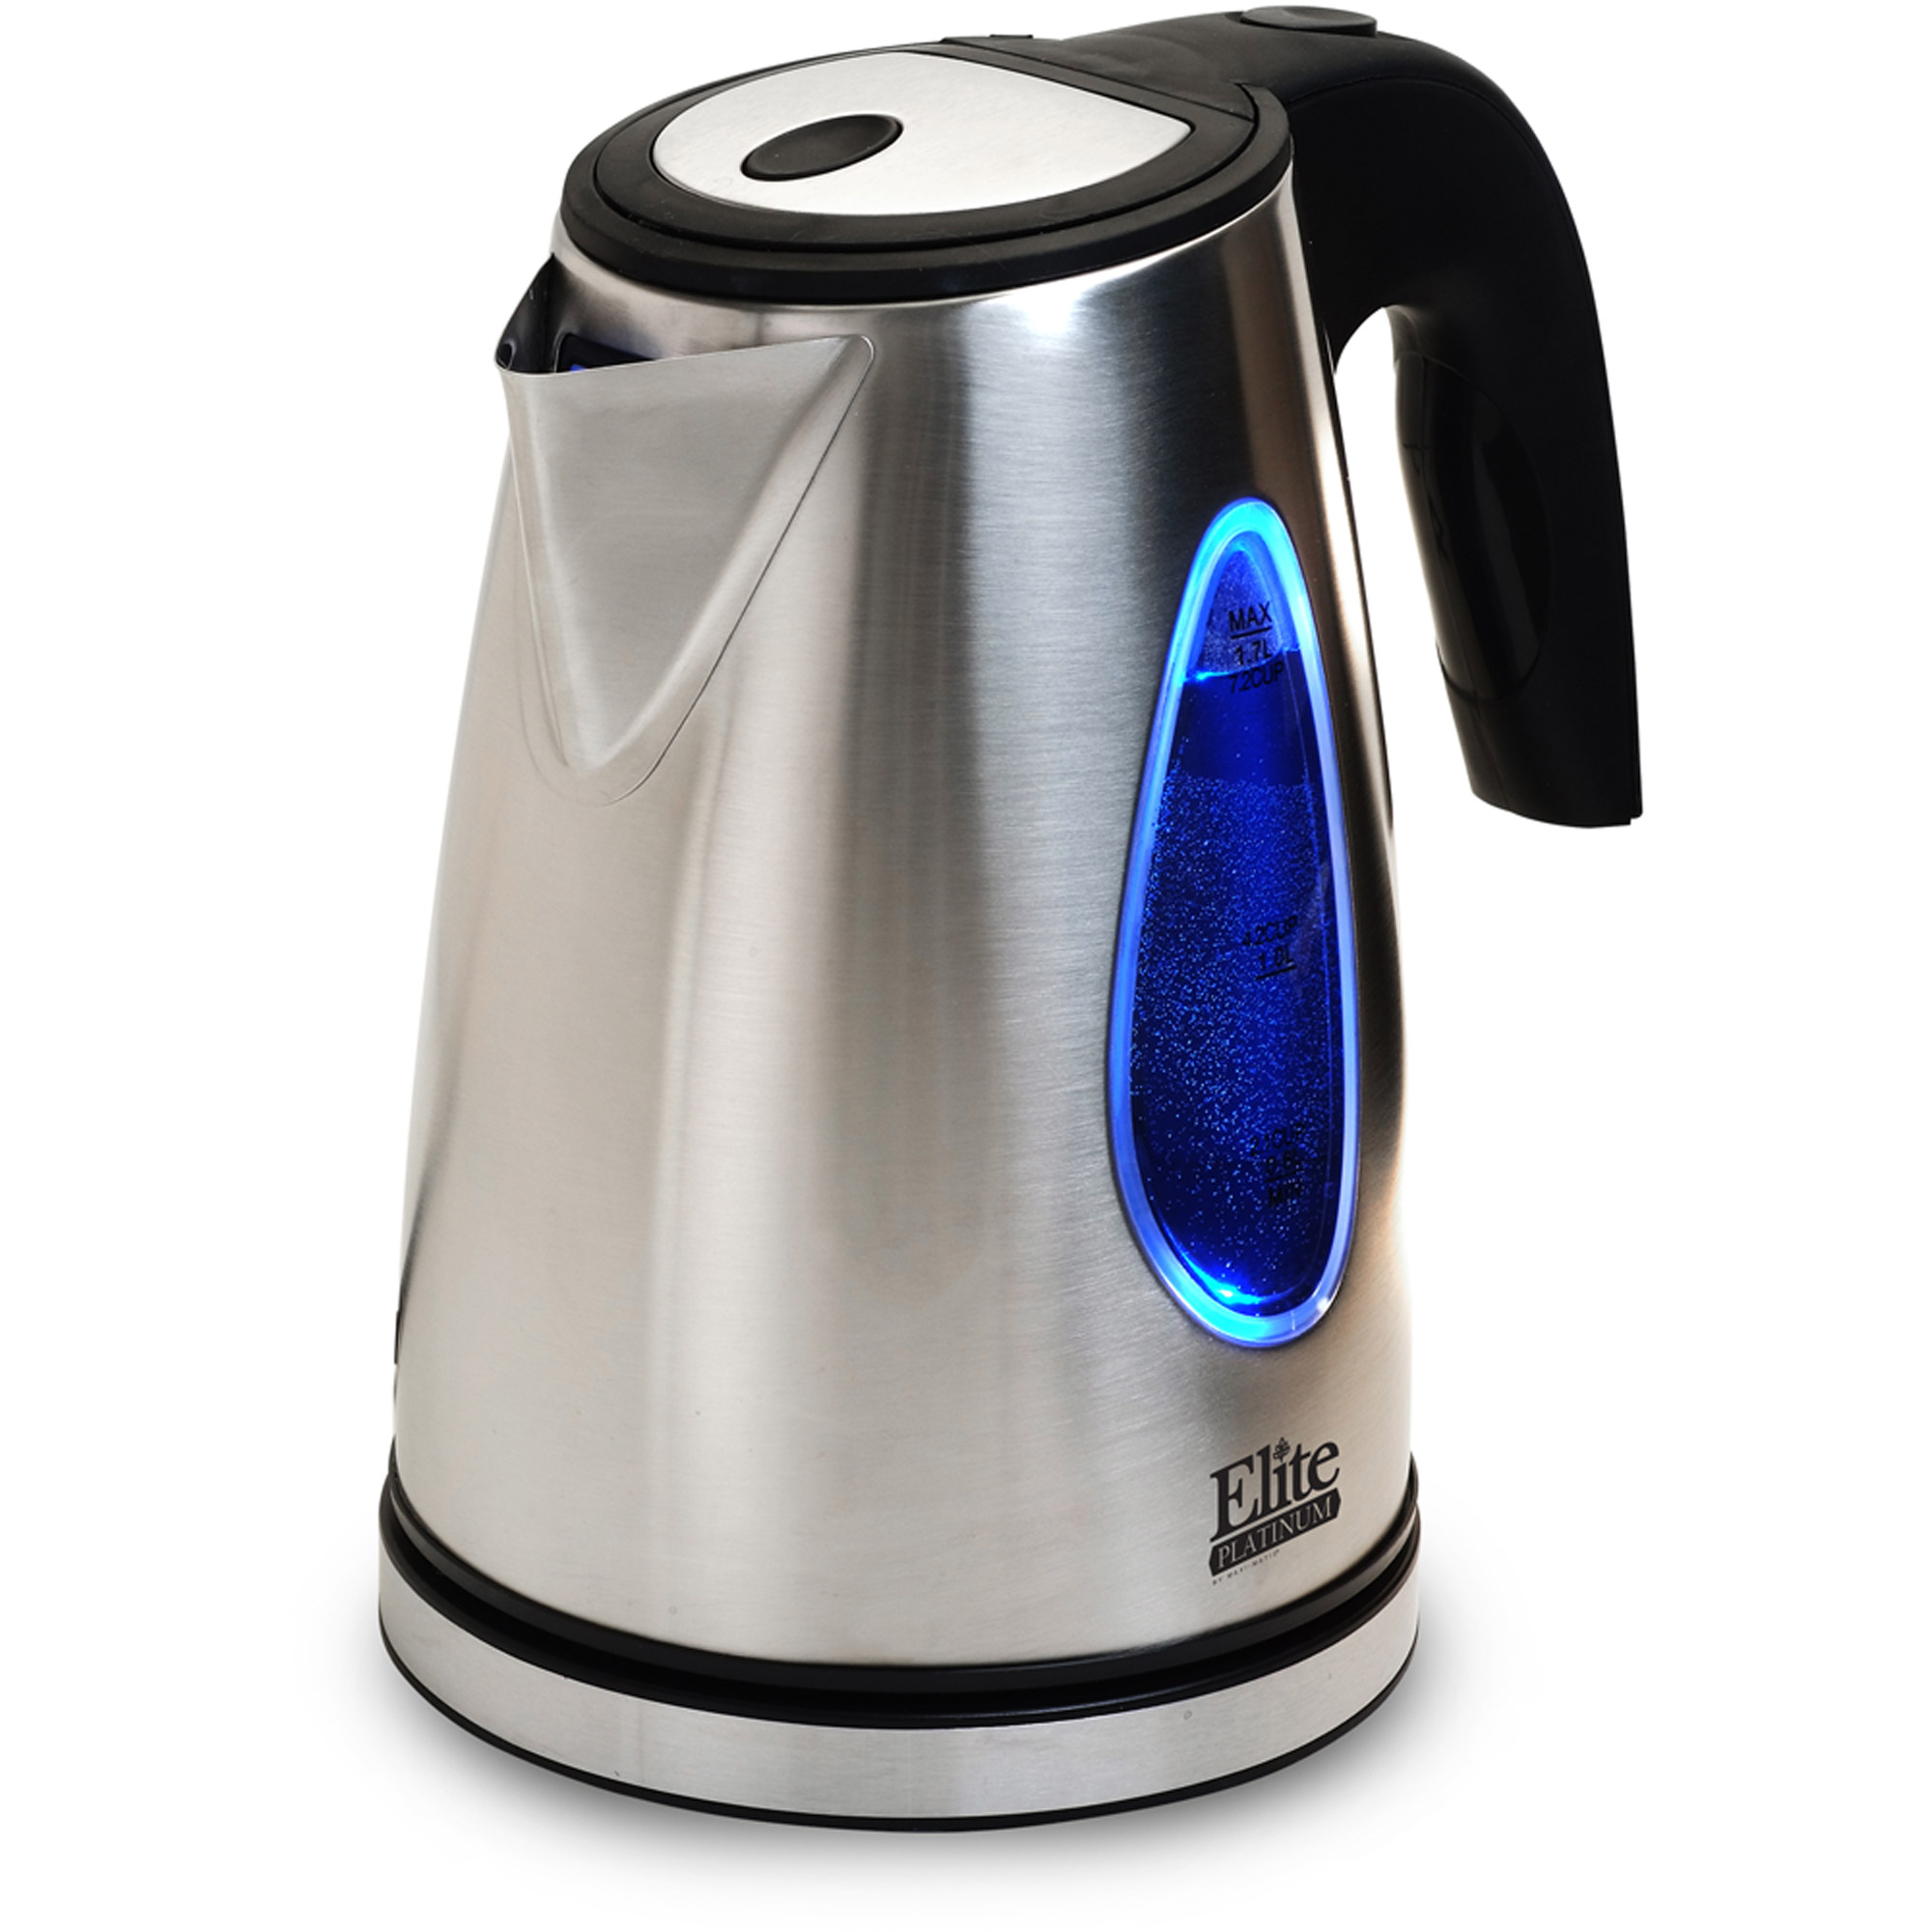 Elite Platinum EKT-1271 Stainless Steel 1.7L Cordless Kettle